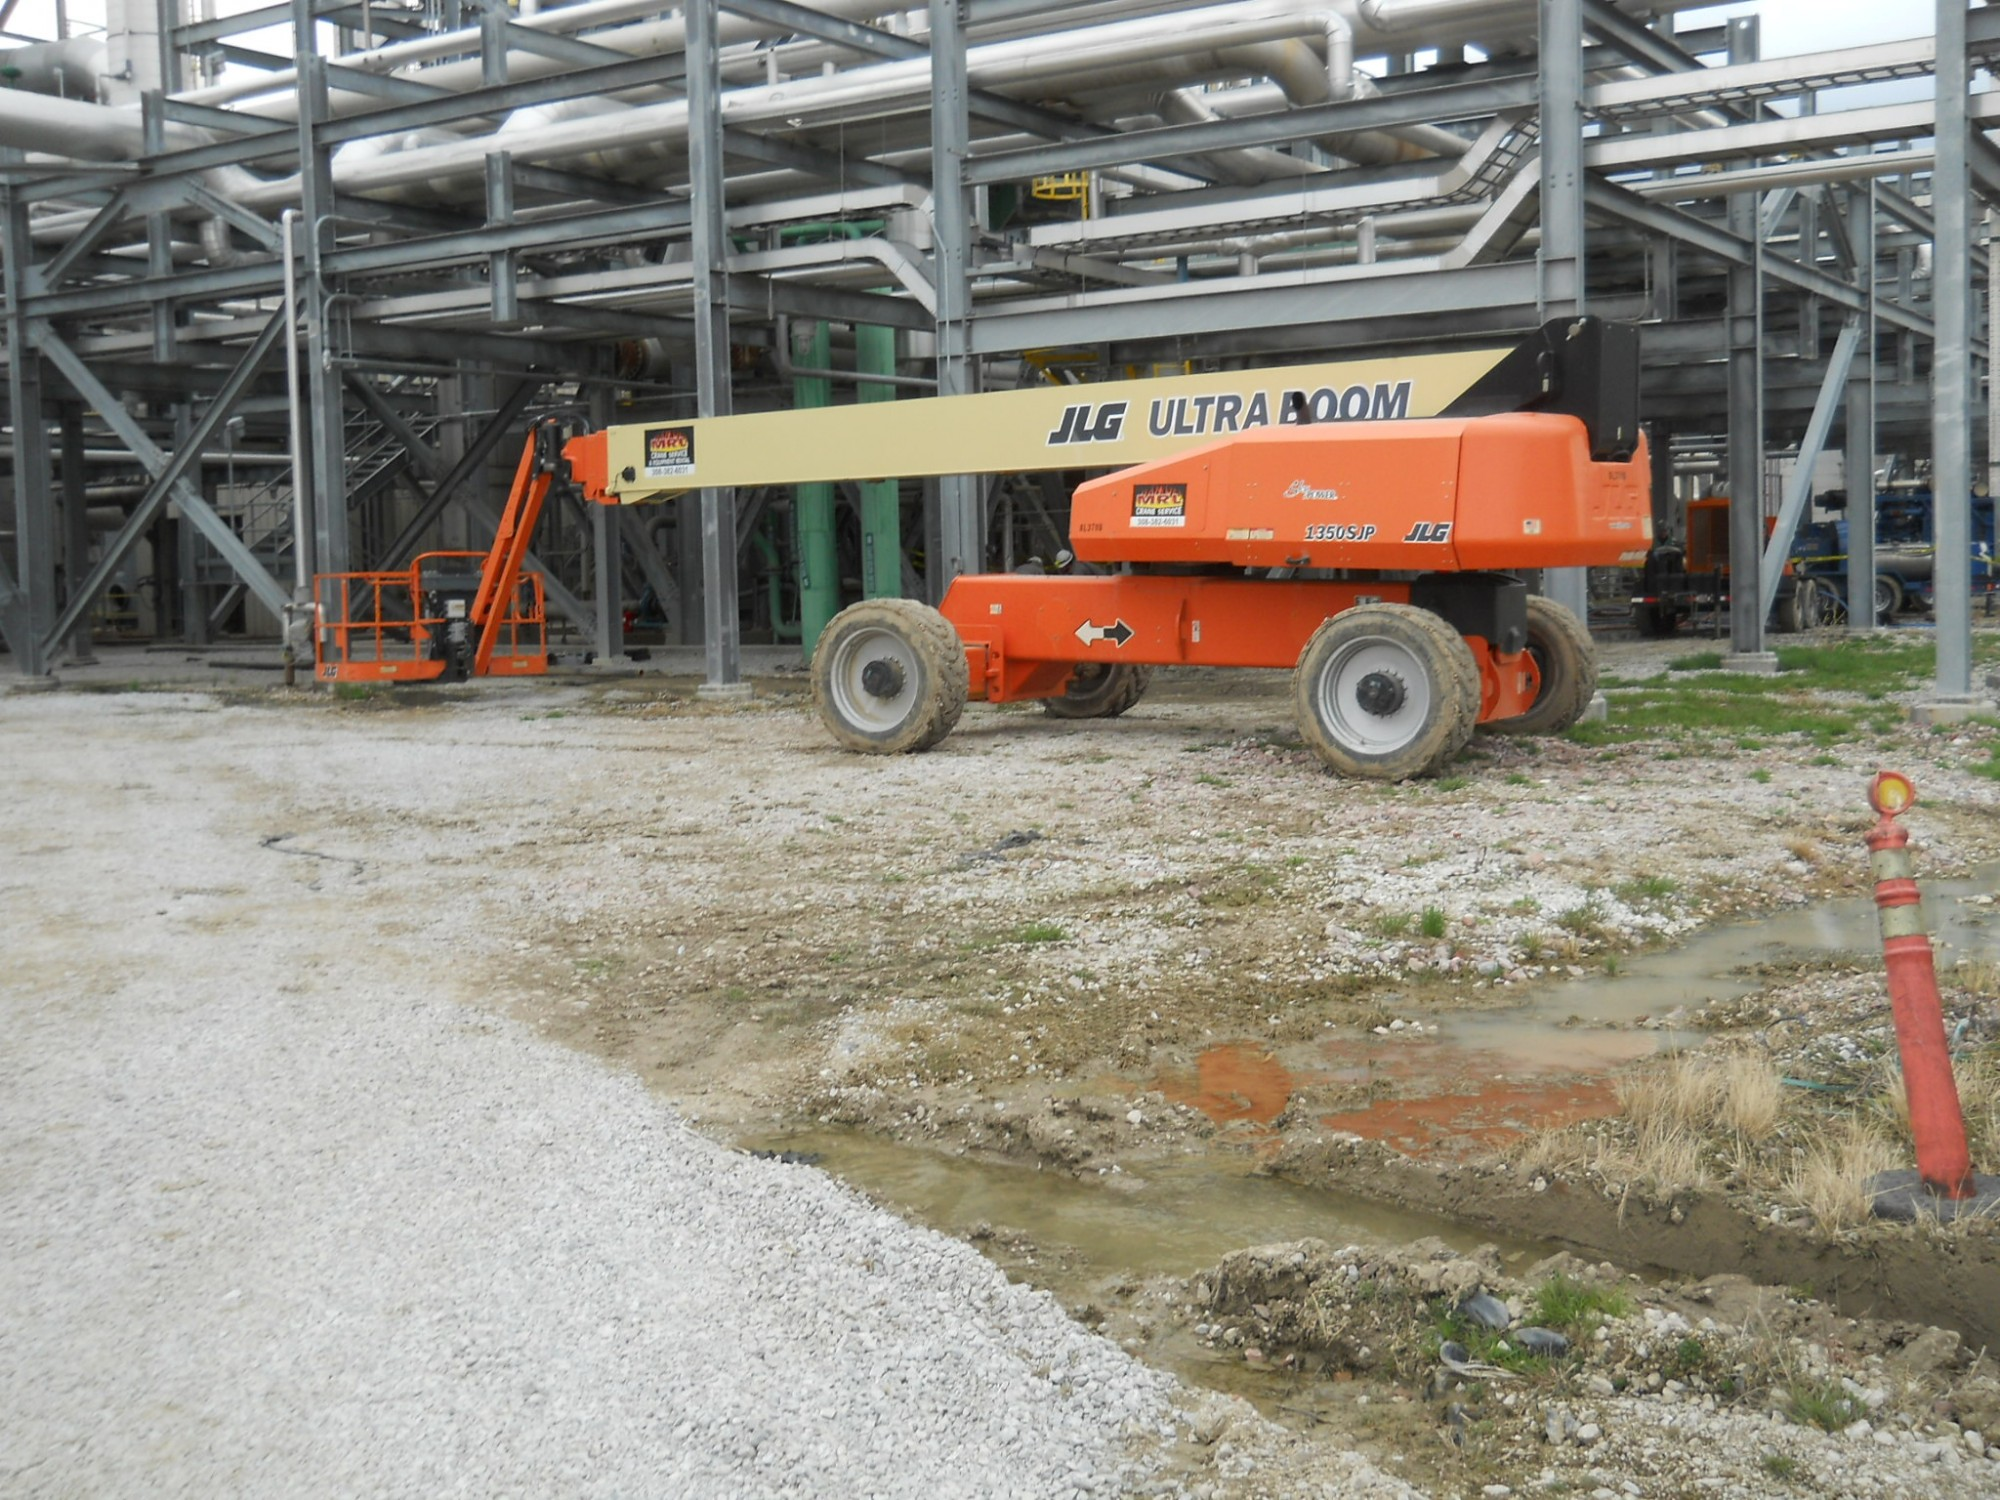 Small Machinery Rental & Storage Containers | Hastings